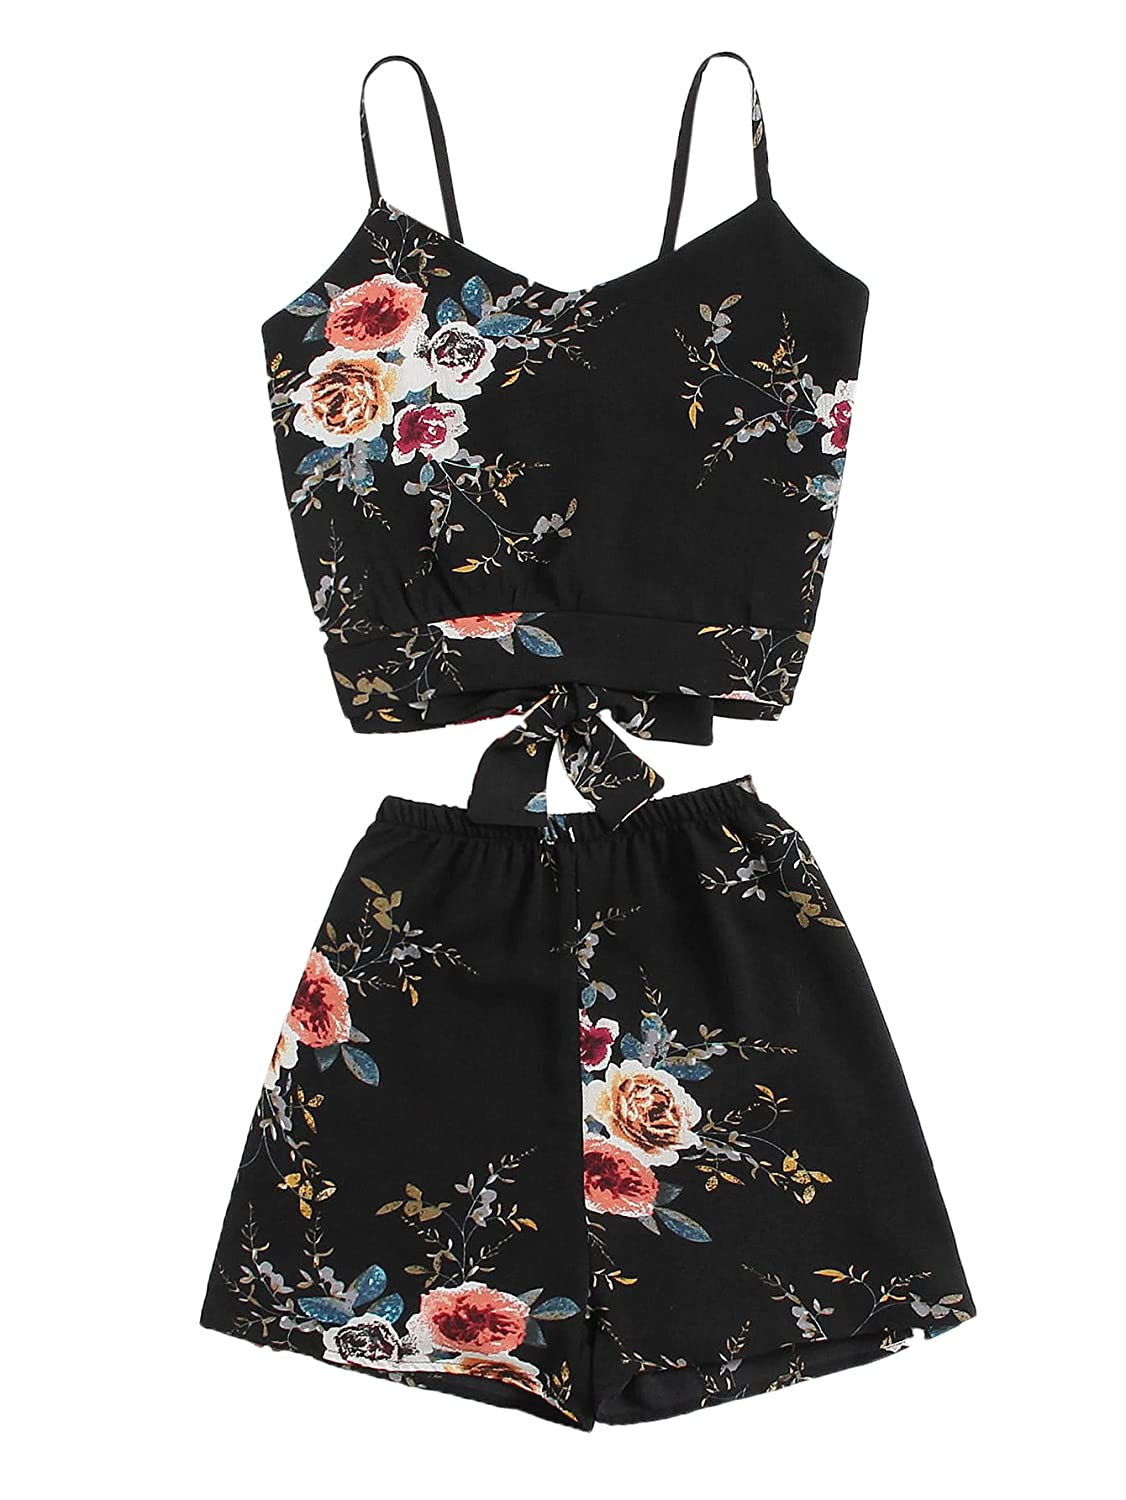 MakeMeChic Women's Summer Floral Boho Tie Cami Crop Top with Shorts